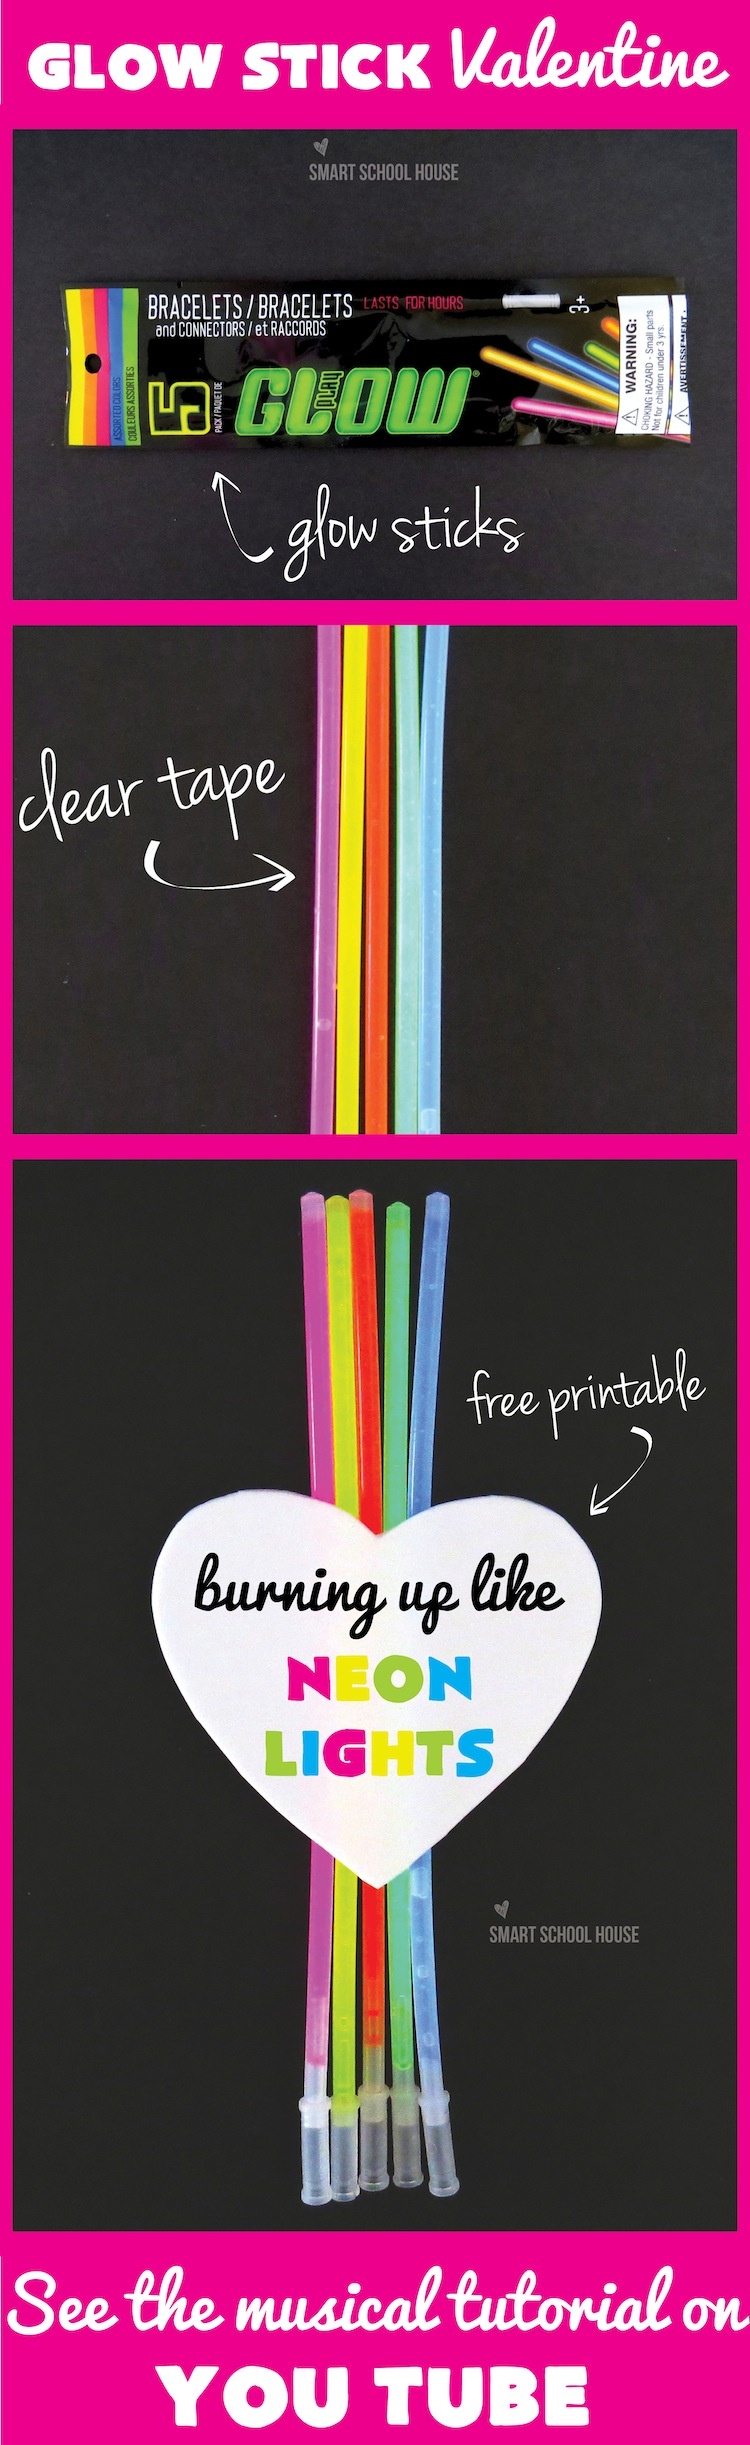 Valentine- we'll be burning up like neon lights! A neon glow stick valentine craft (plus video)